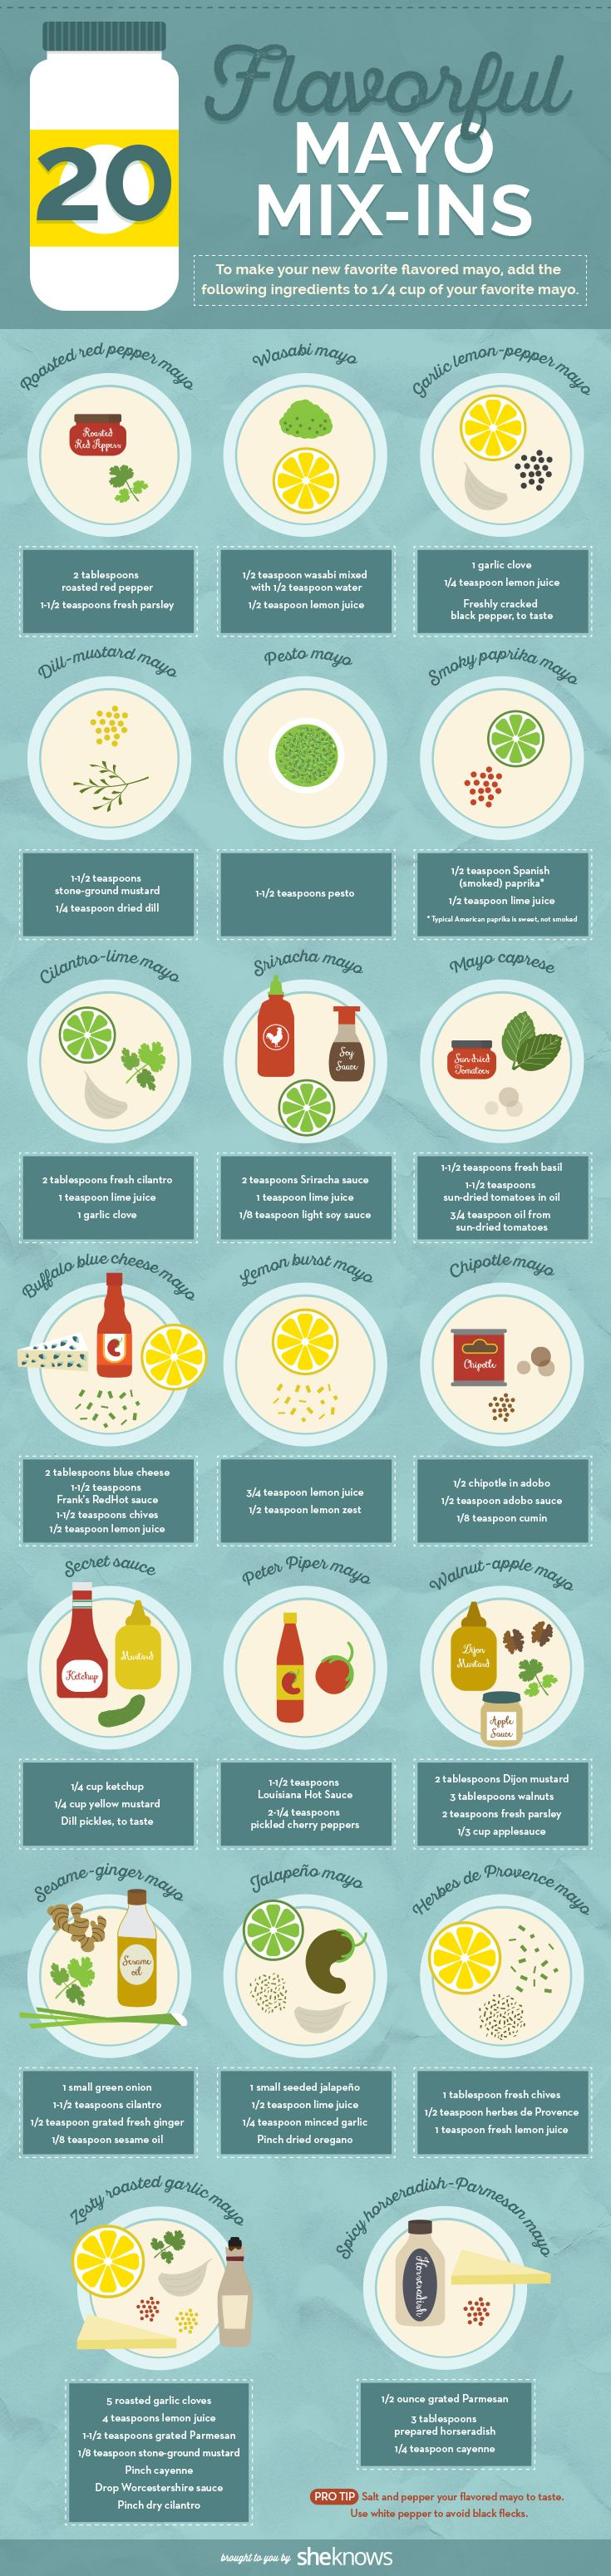 These mayo recipes look delicious!